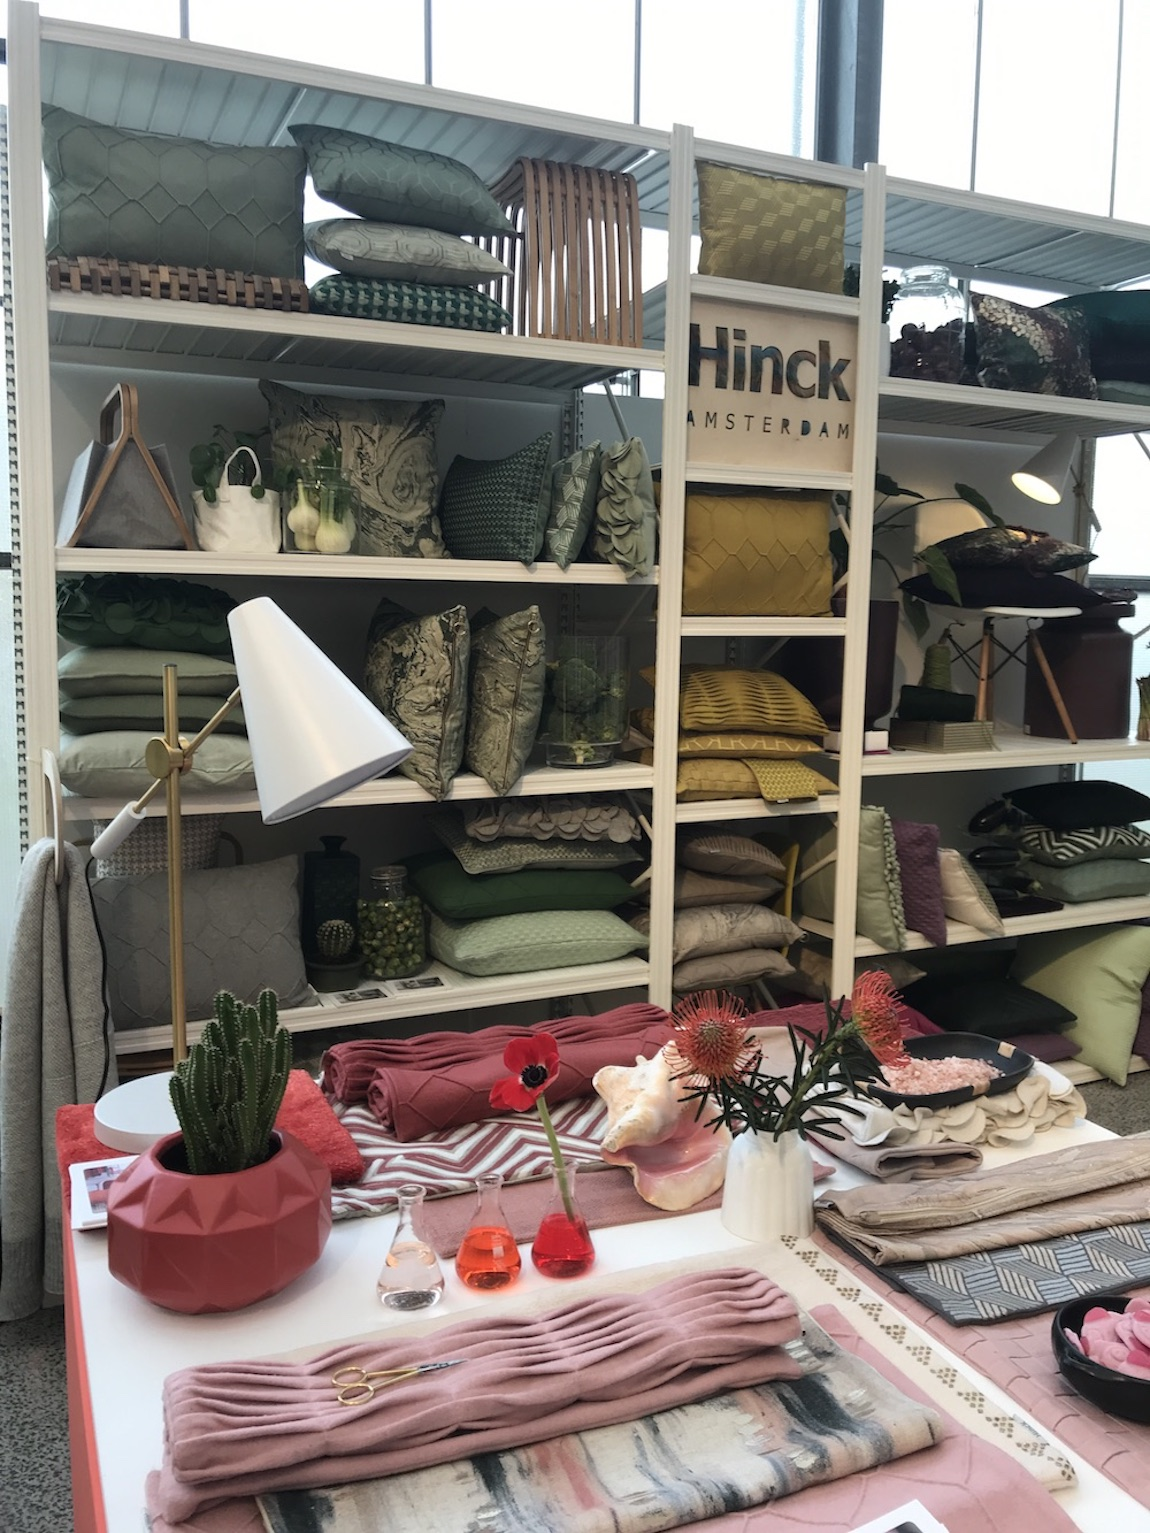 Styling ID Blog showUP Highlights Hinck